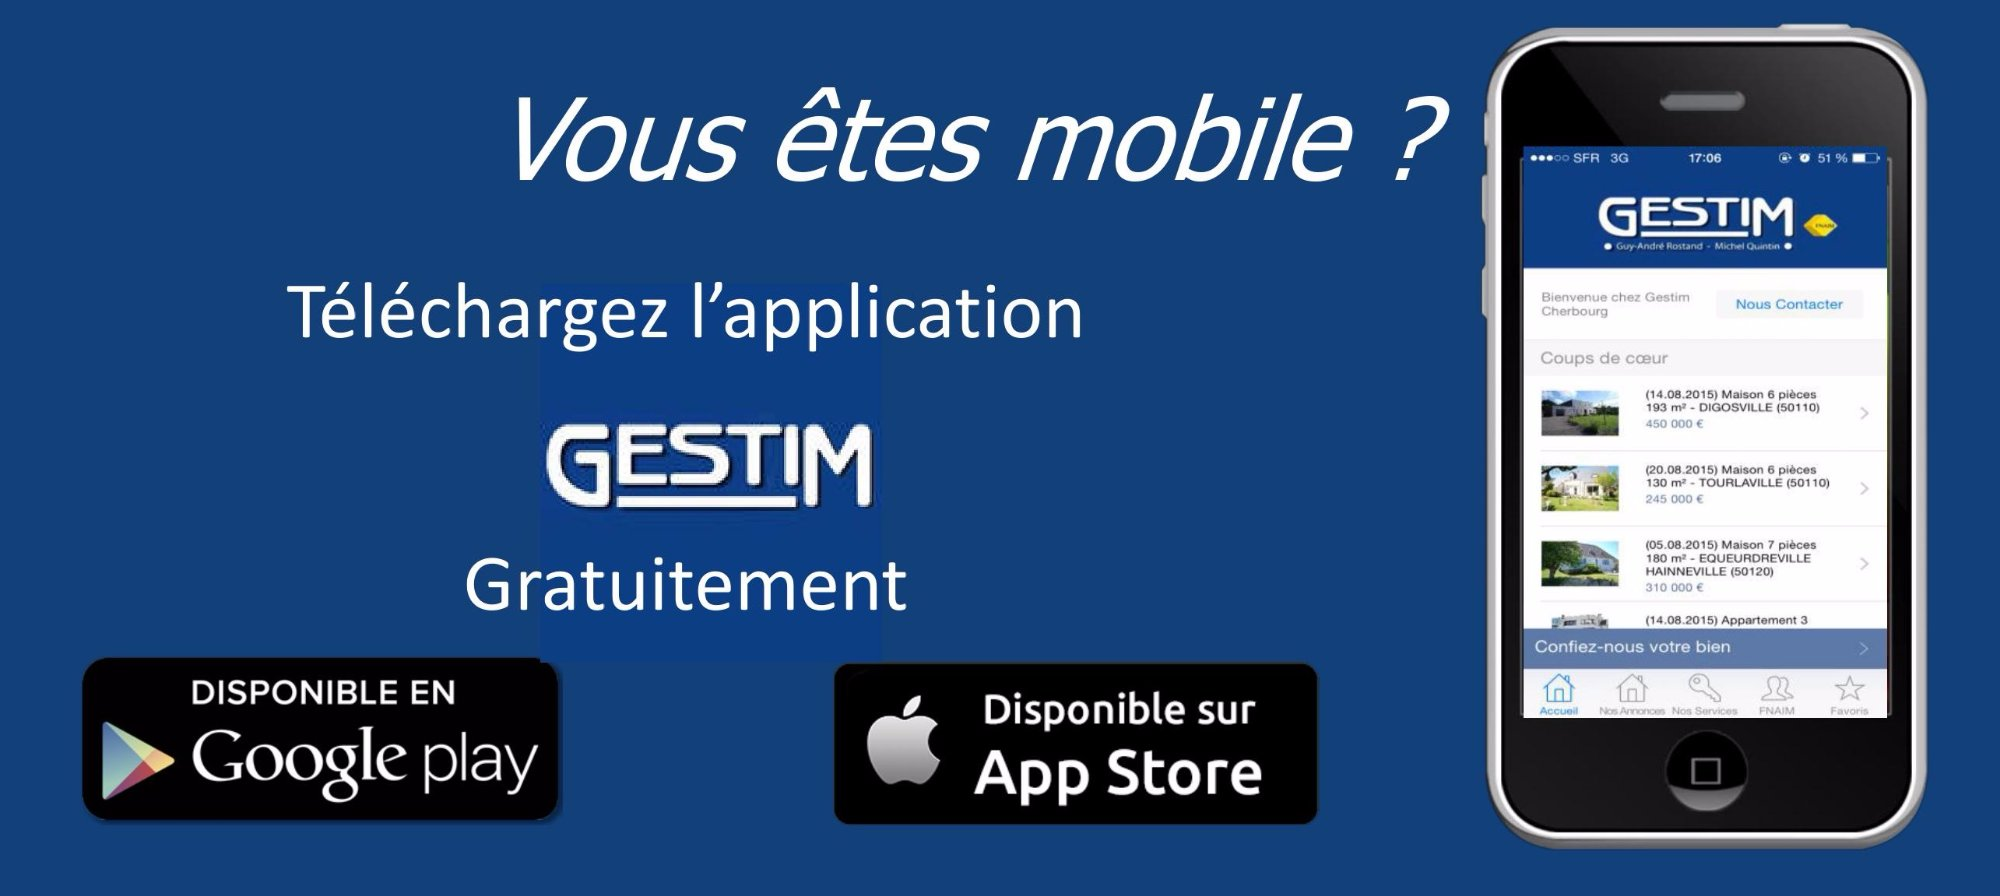 Application GESTIM